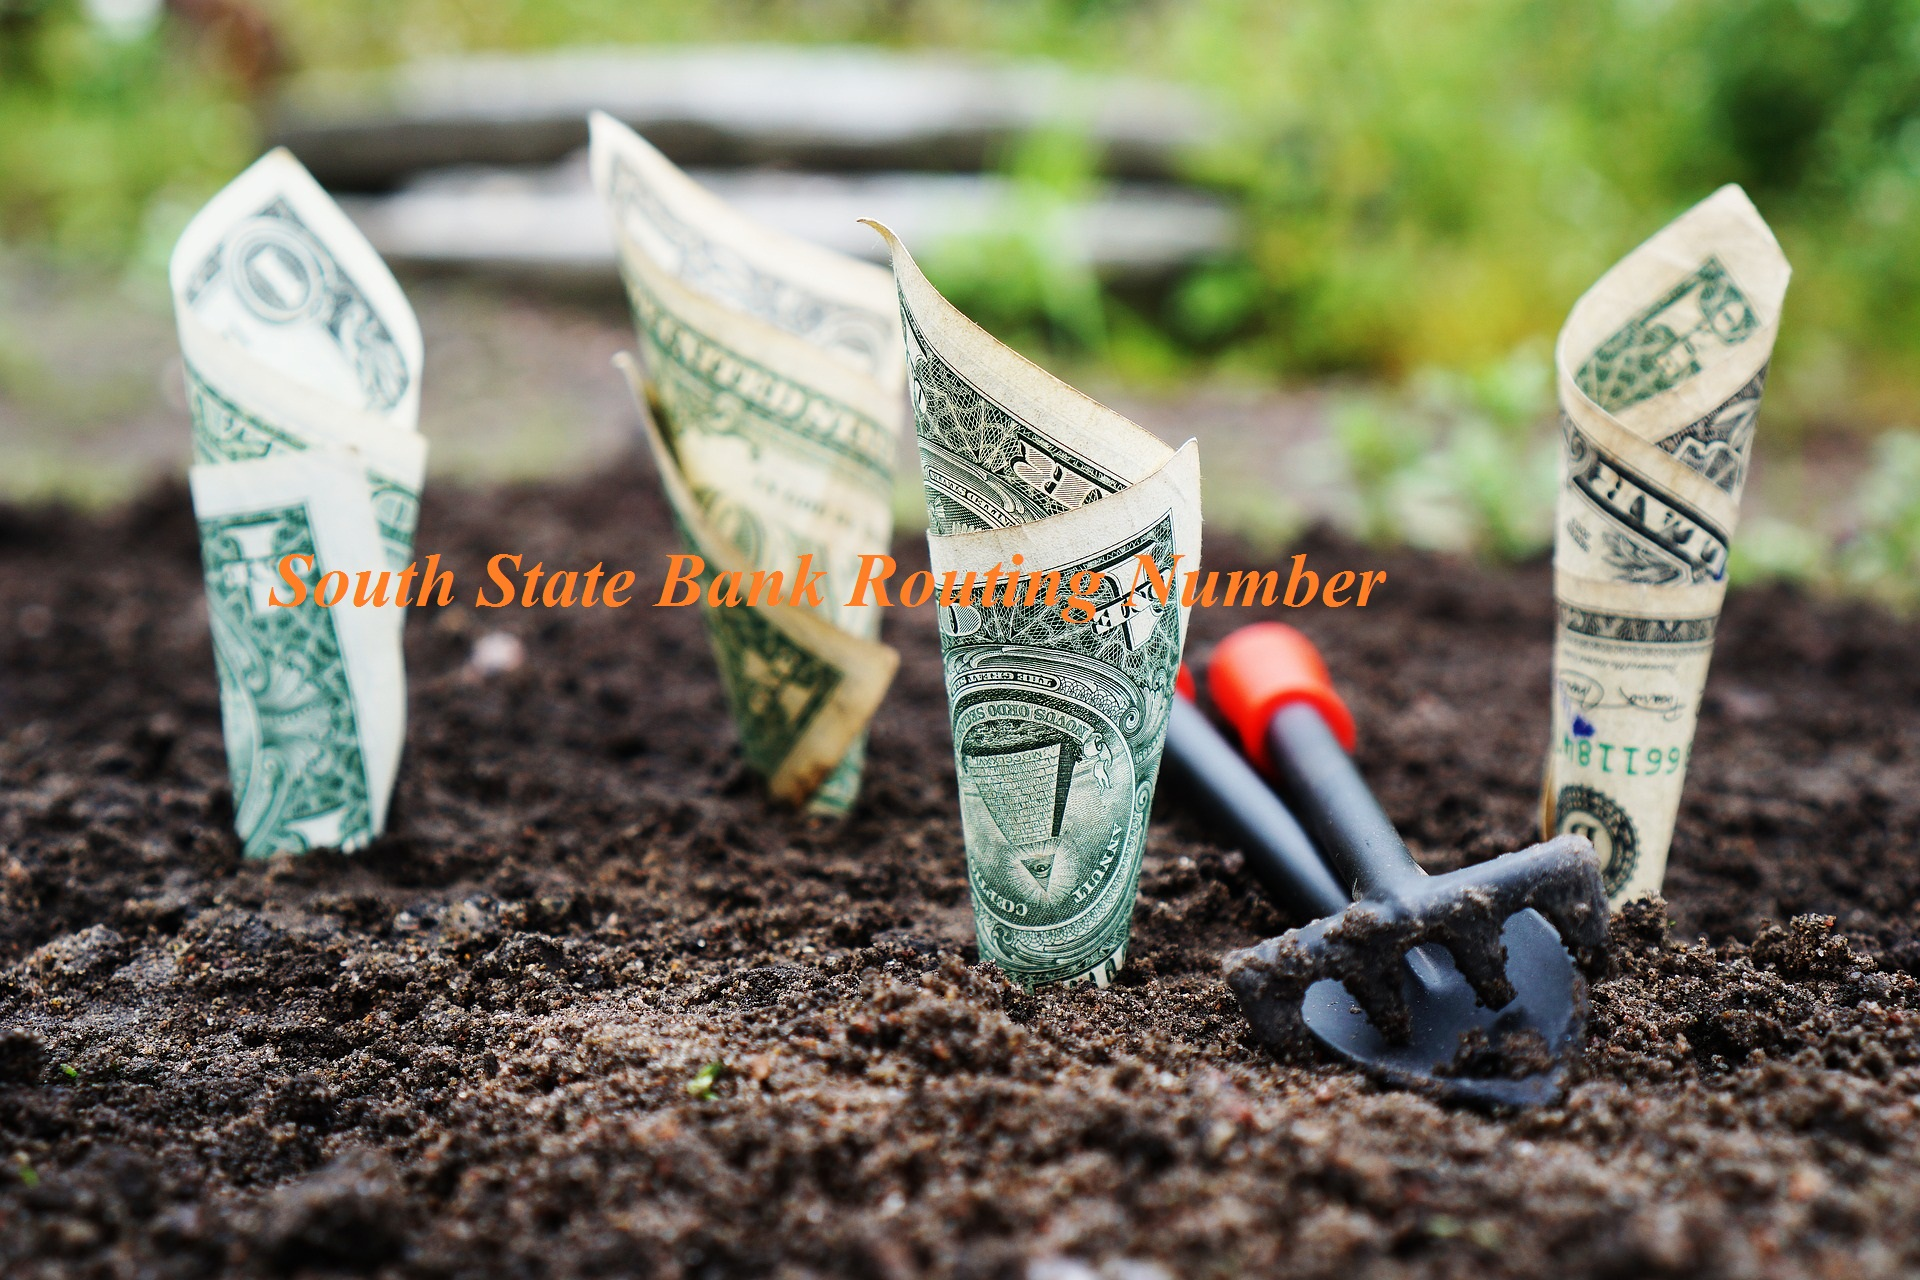 South State Bank Routing Number